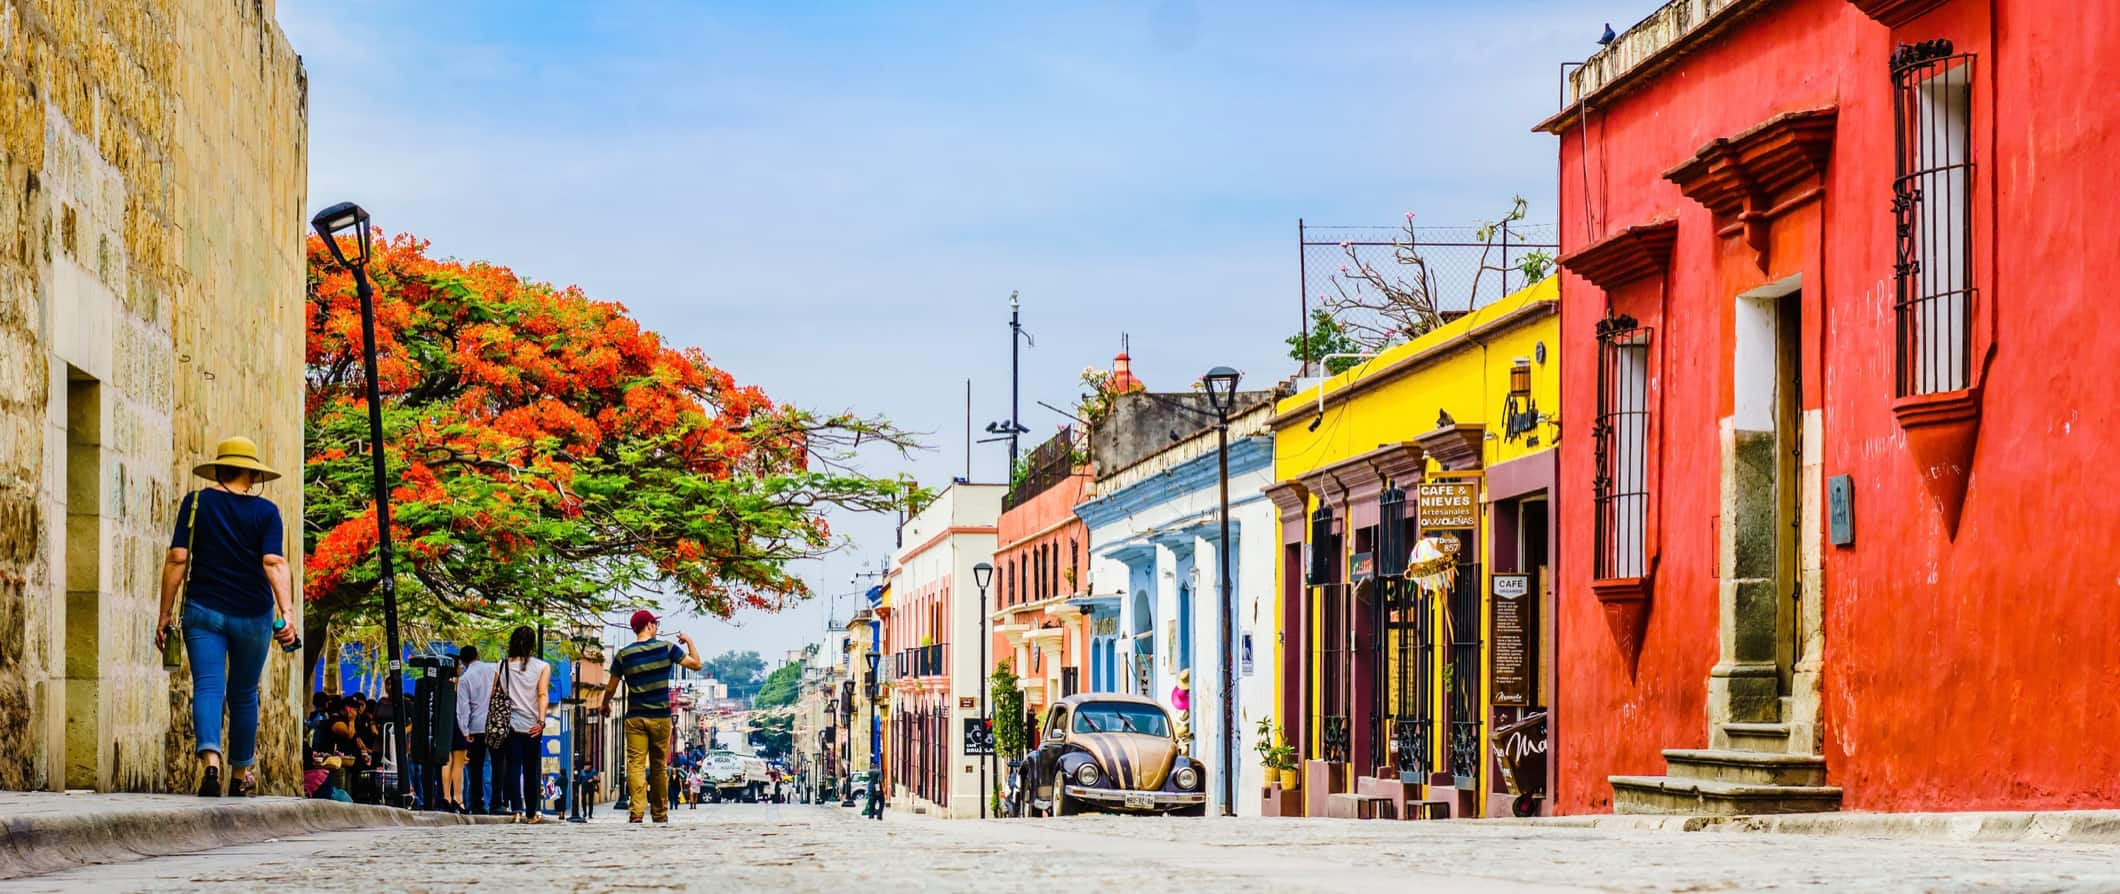 The colorful historic downtown of Oaxaca, Mexico